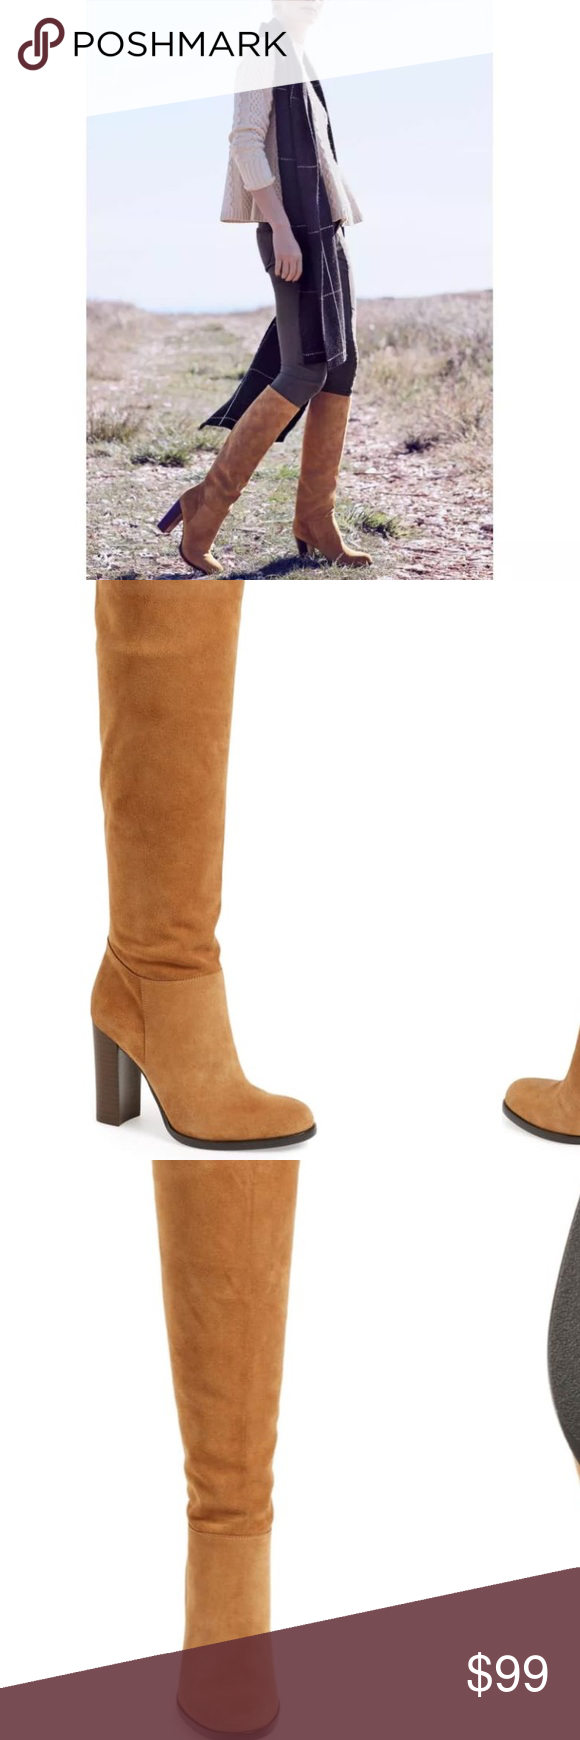 94cfd7d96 Sam Edelman Victoria Slouch Boots Tan Suede SAM EDELMAN VICTORIA SLOUCH  BOOTS DETAILS  amp  CARE